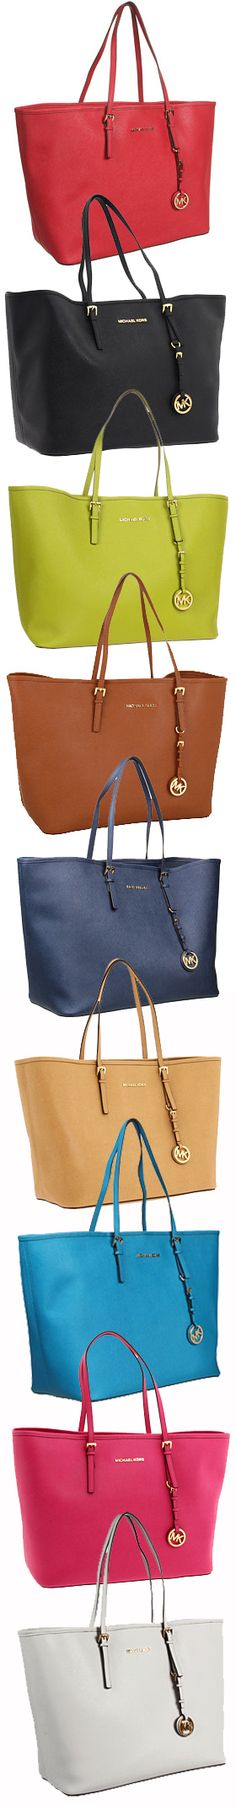 MICHAEL Michael Kors Saffiano Medium Travel Tote.  One in each color please!